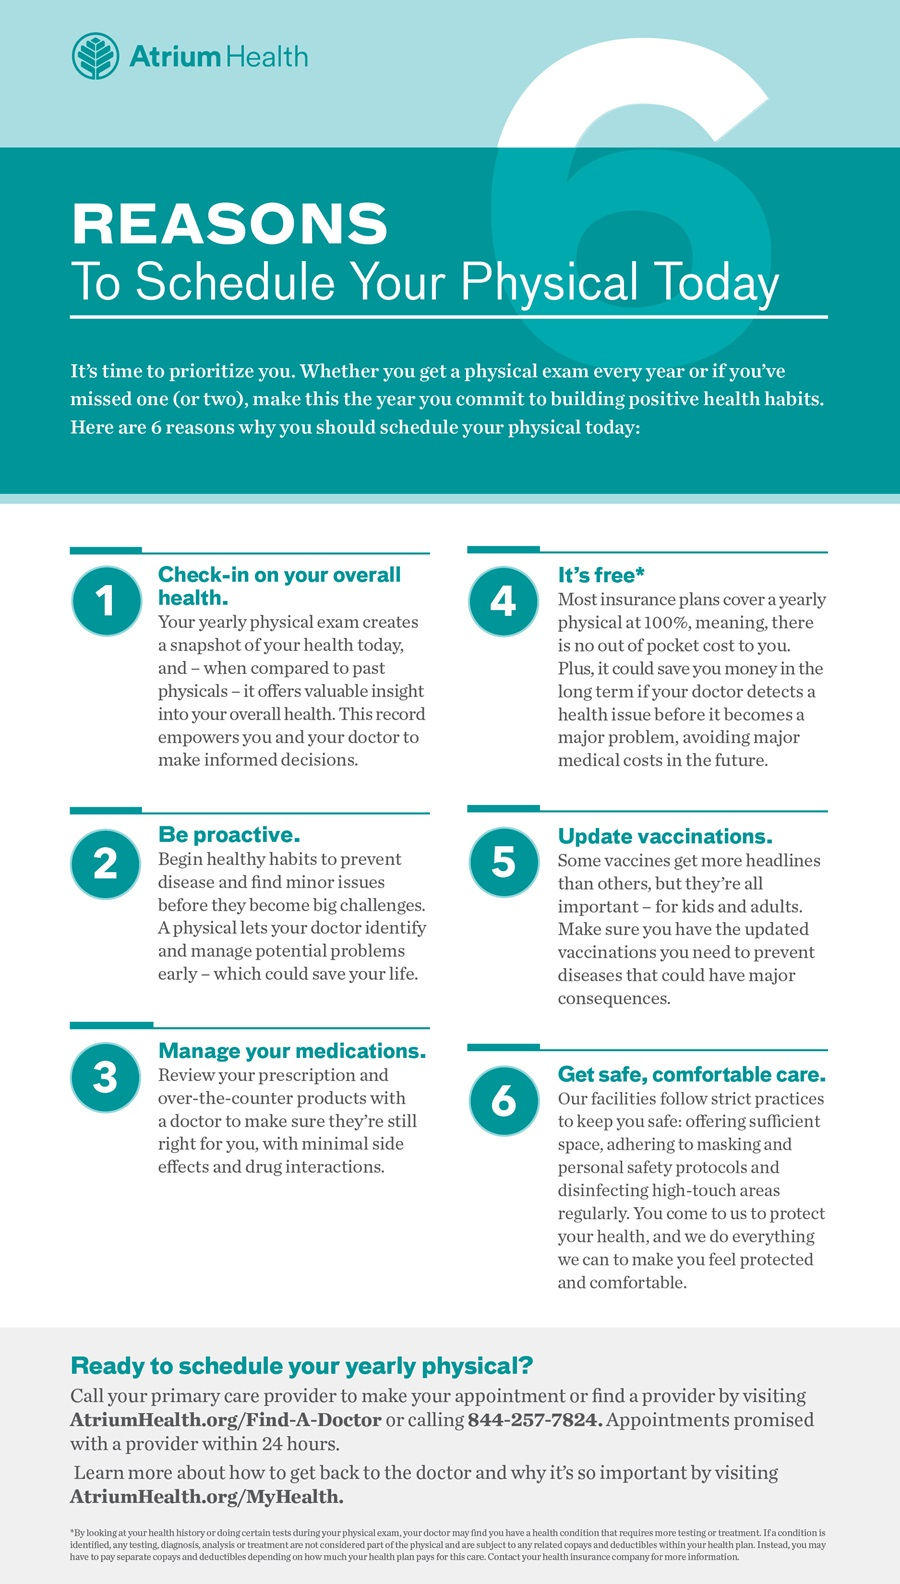 6 reasons to schedule your primary care physical today